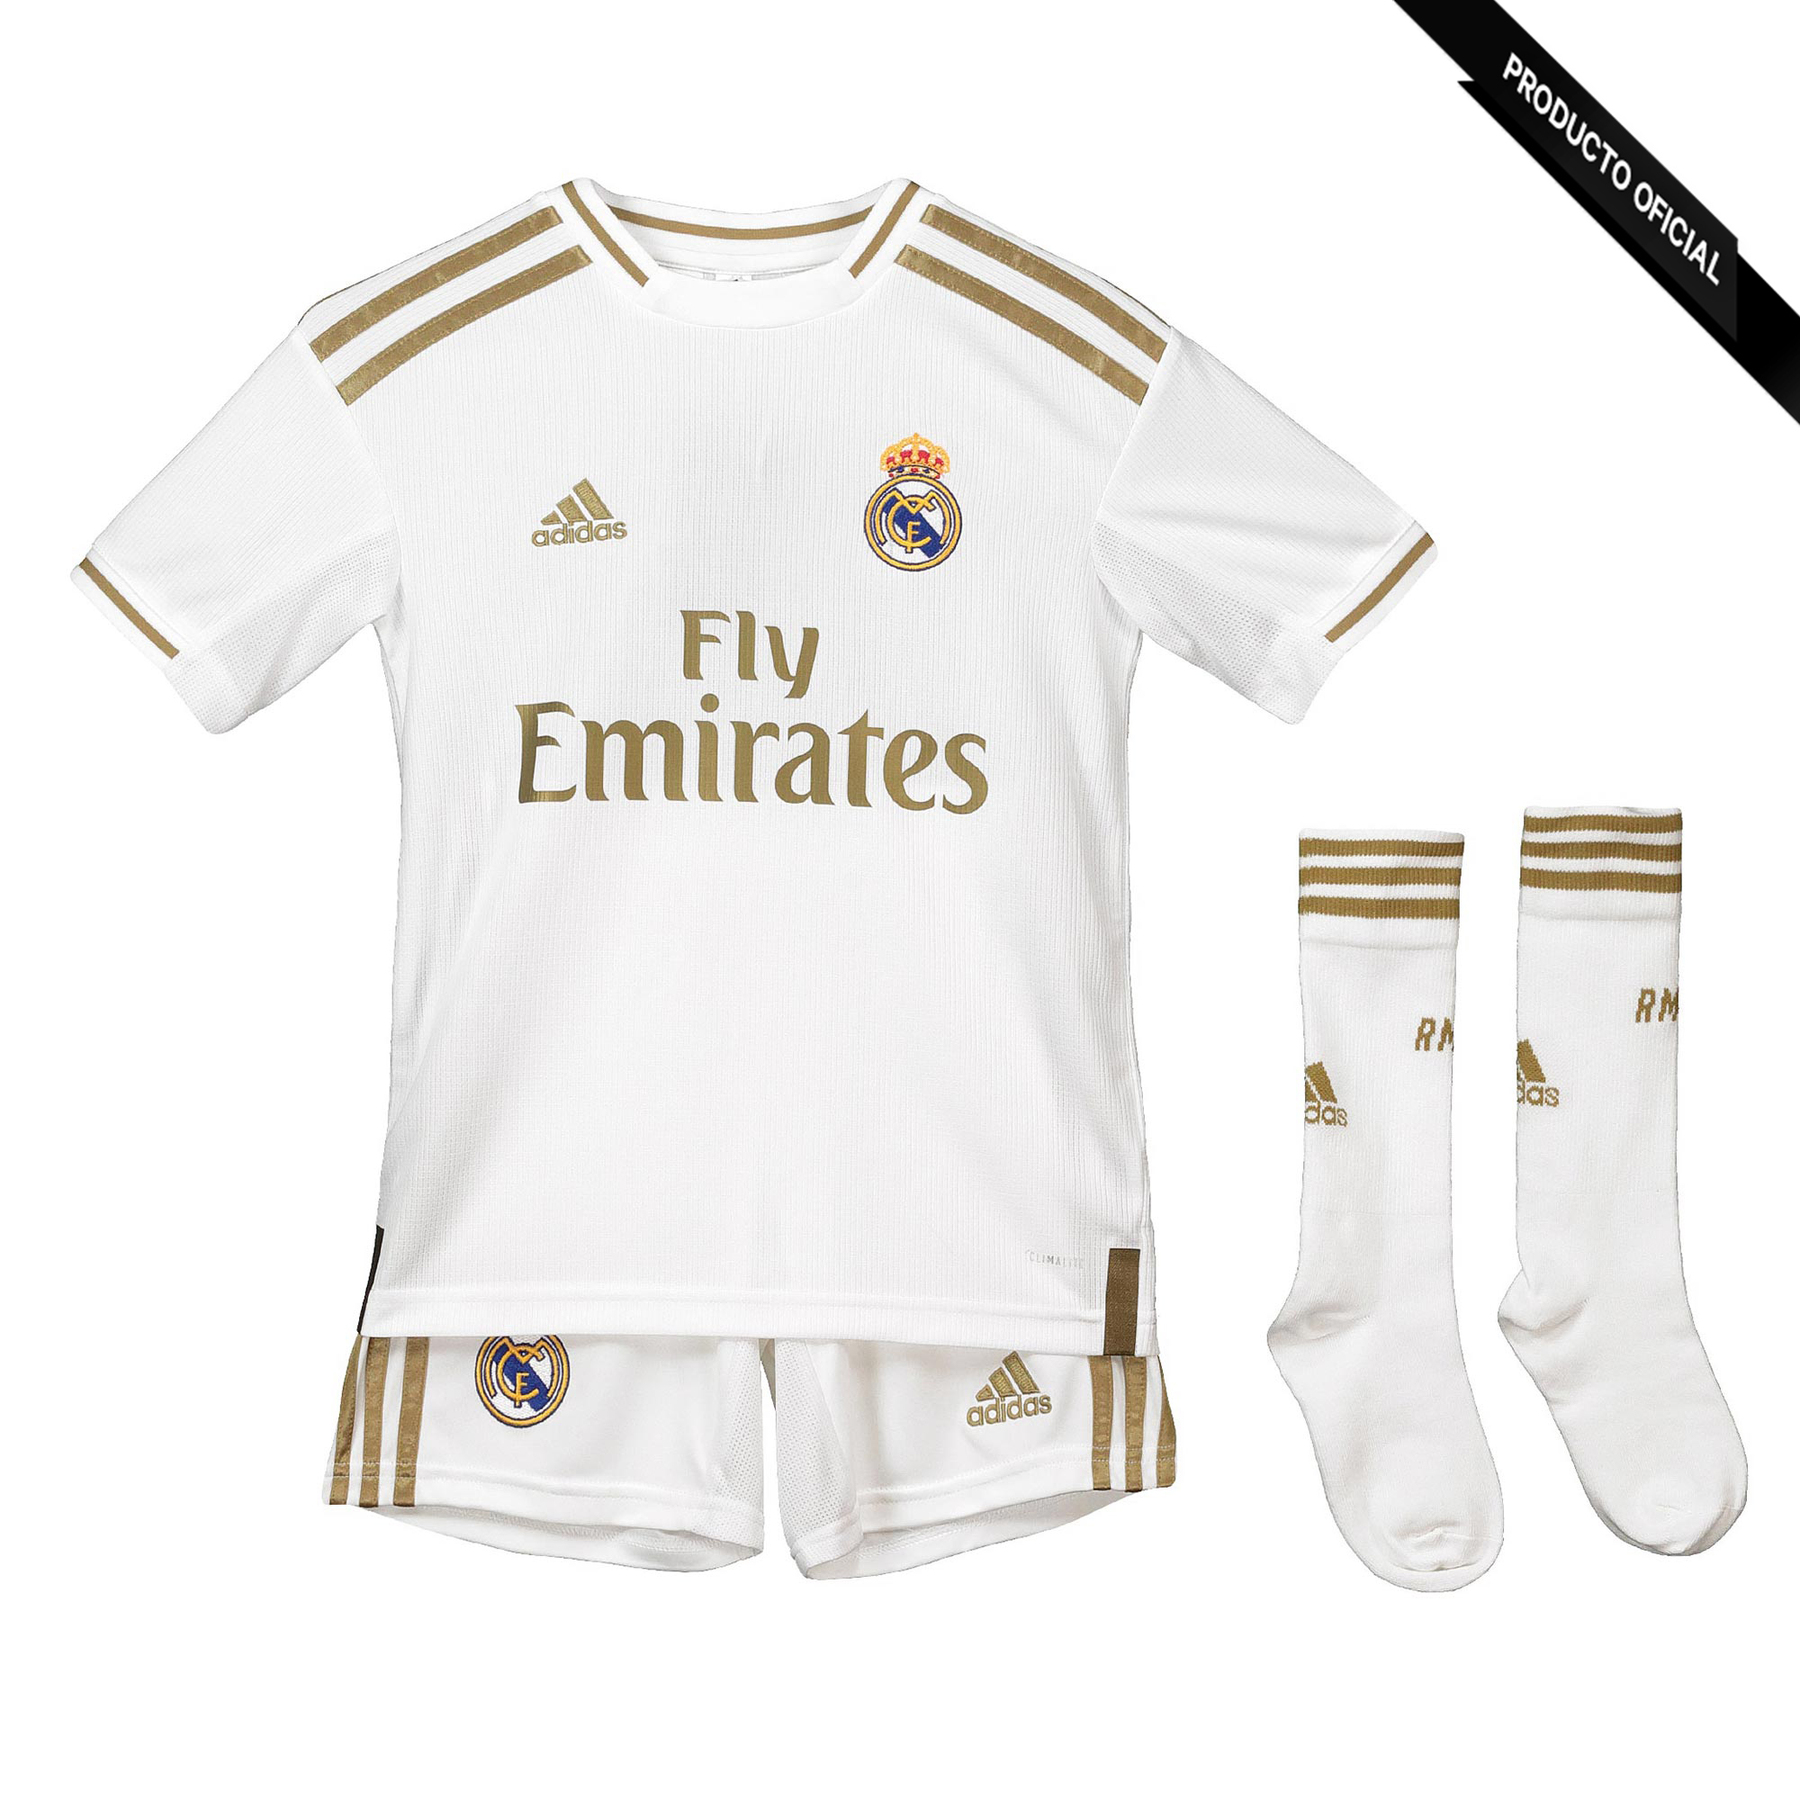 ADIDAS Real Madrid 2019-2020 Conjunto Infantil-Dorsal Hazard-7-year 14 First Away Kit Soccer